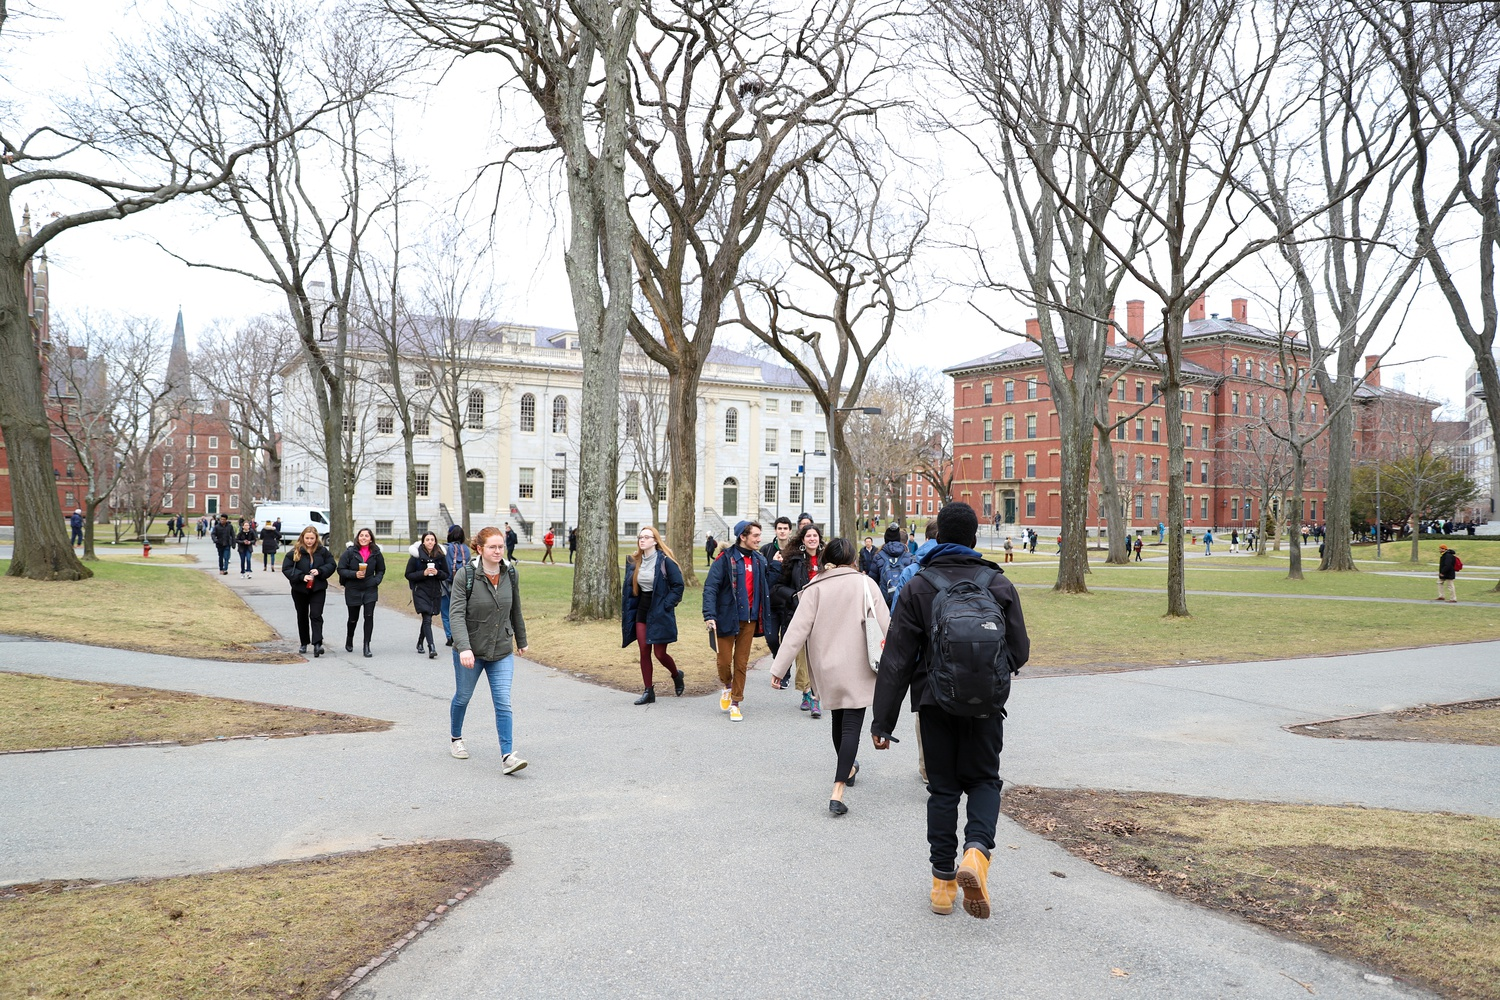 On the first day of the spring semester, undergraduate students briskly walked to class through Tercentenary Theater.